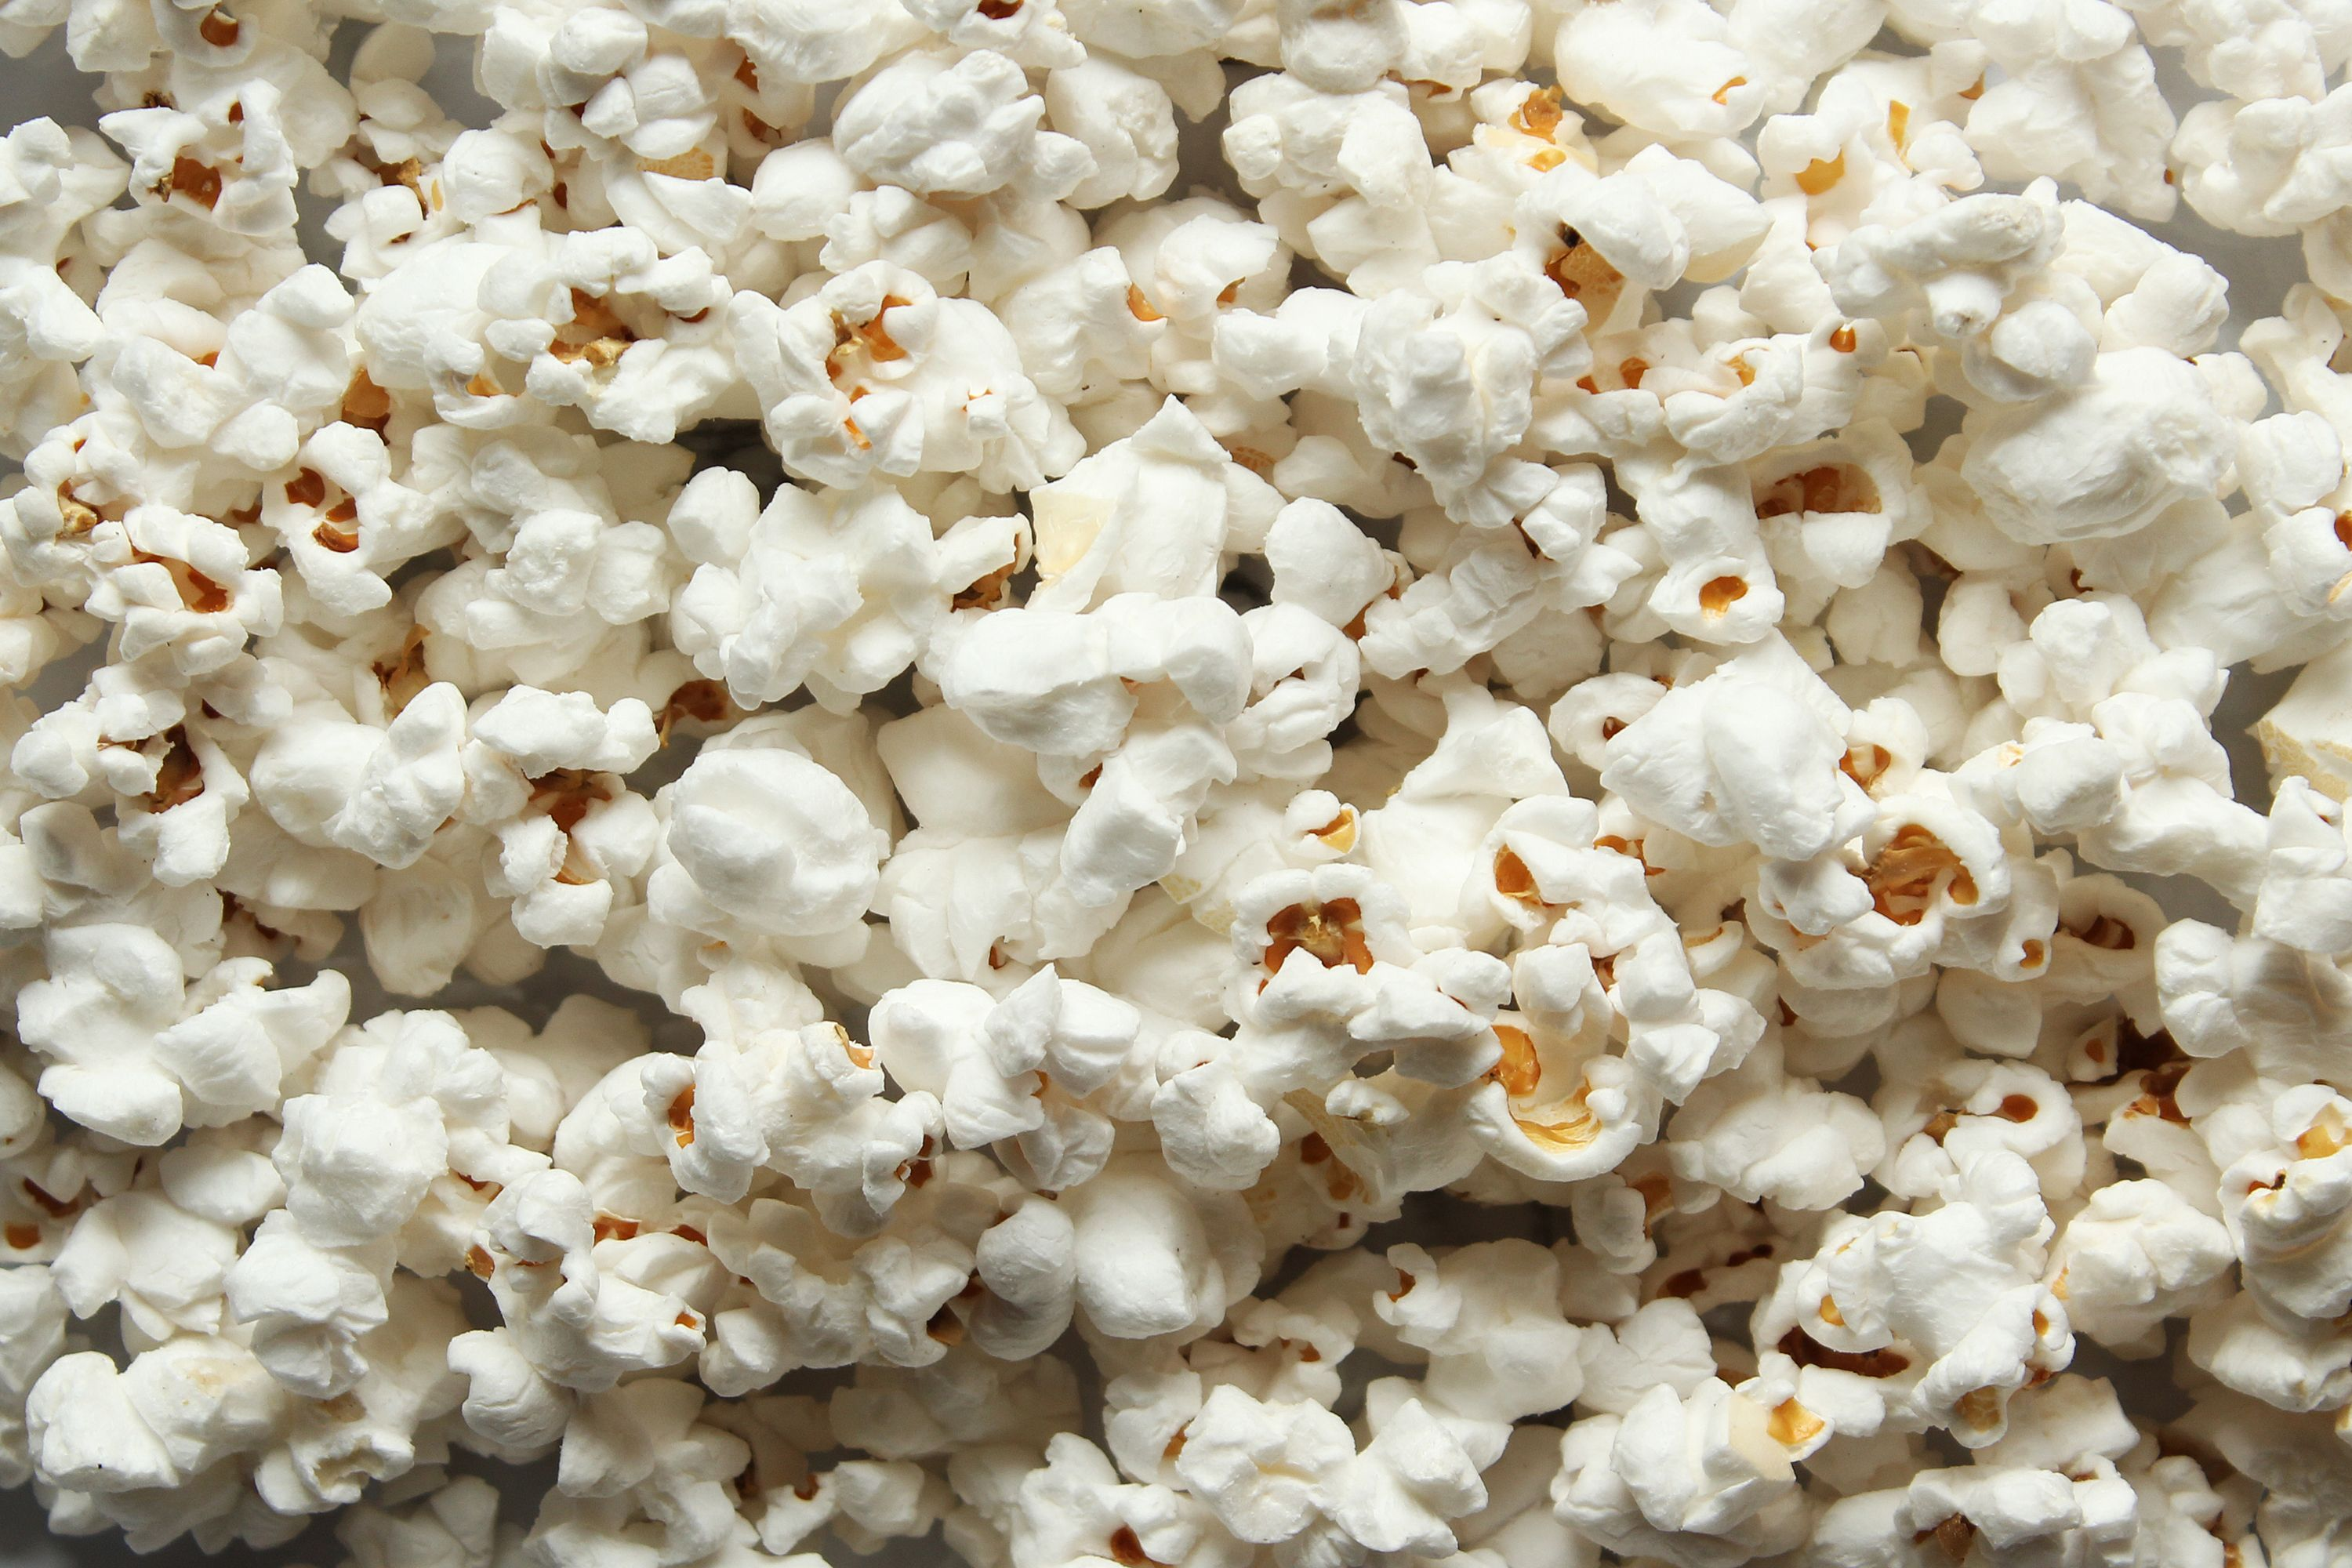 Is Popcorn Healthy? Here's the Lowdown on Your Favorite Movie Snack